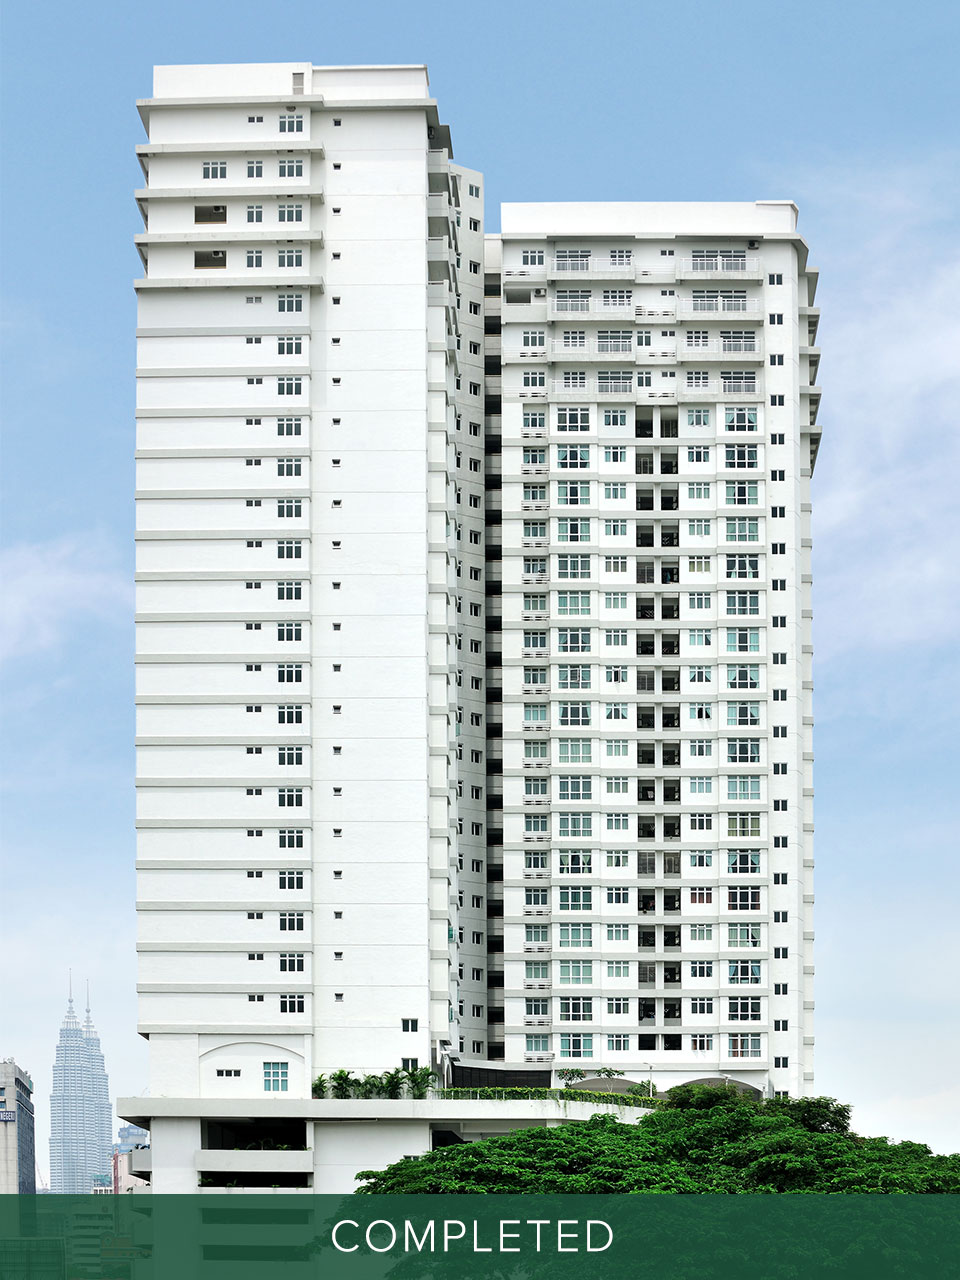 "633 RESIDENCY<a href=""/track-records#633residency"">BRICKFIELDS</a>"